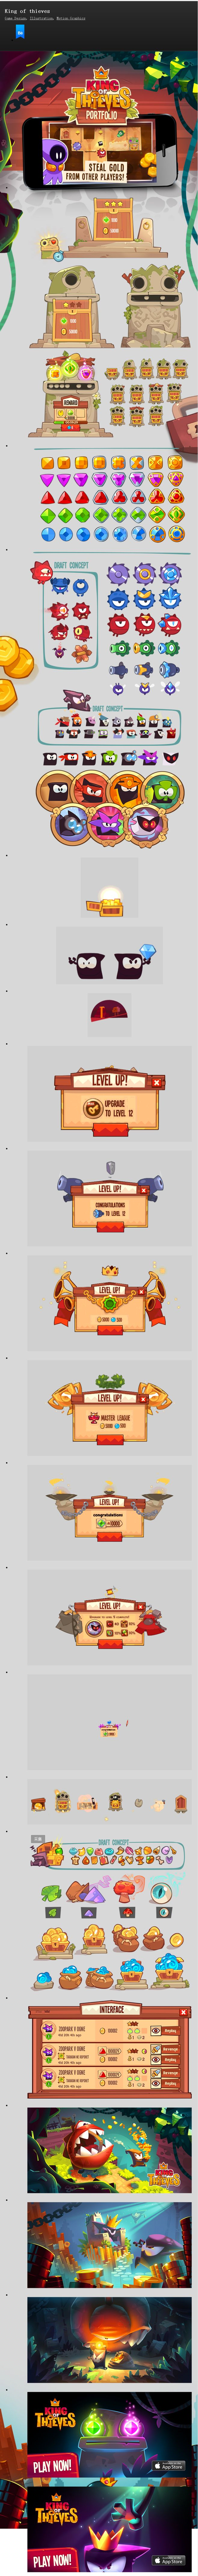 King of thieves on B...